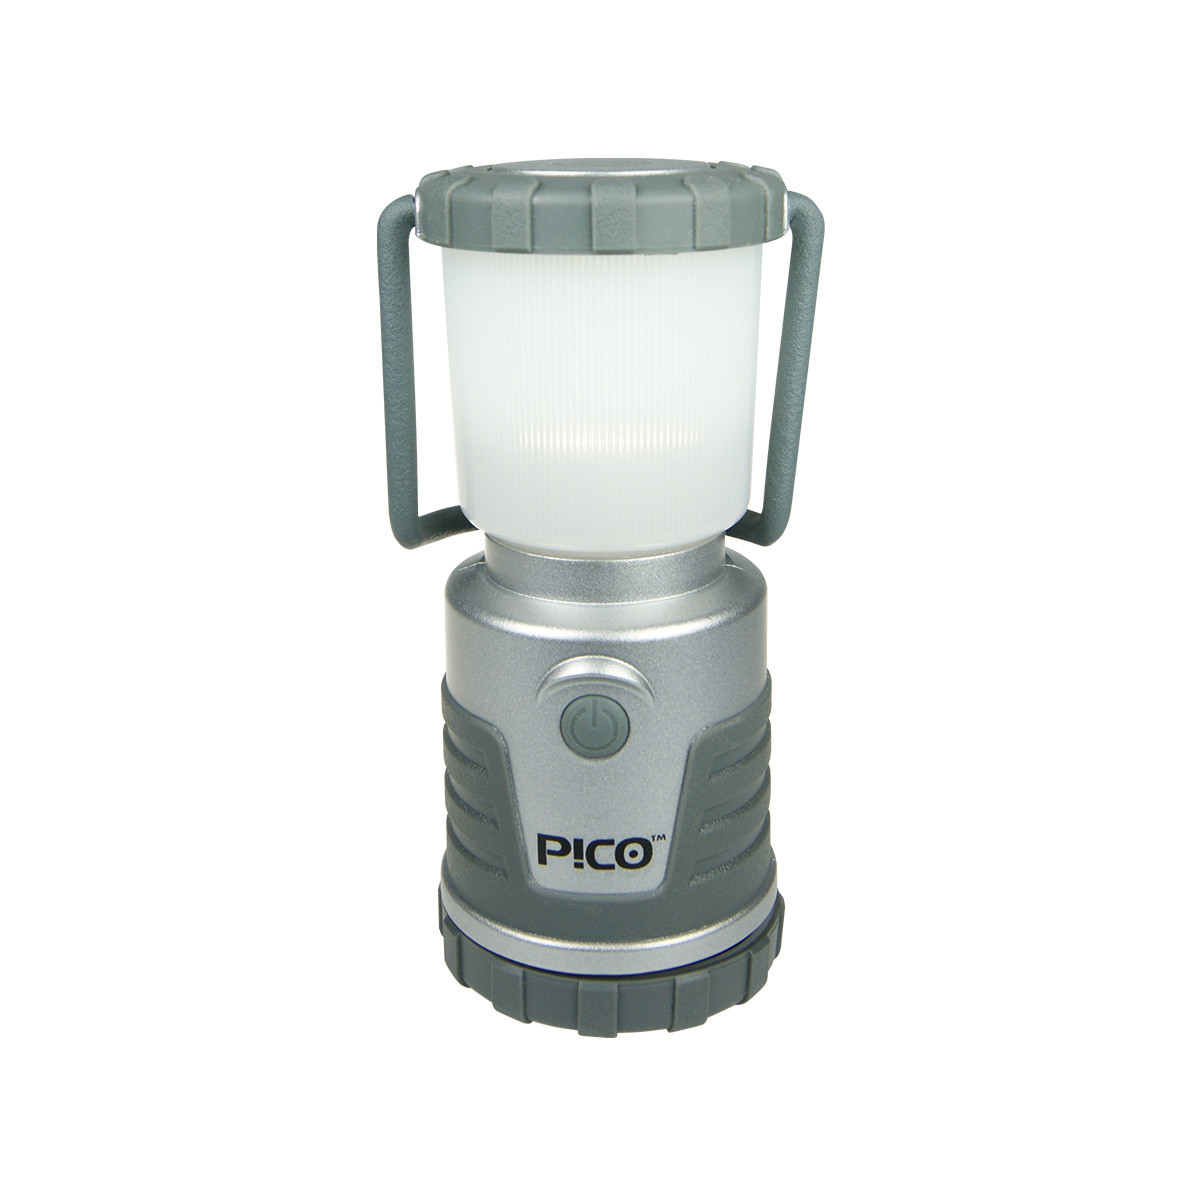 Ultimate Survival Technologies Pico Lantern